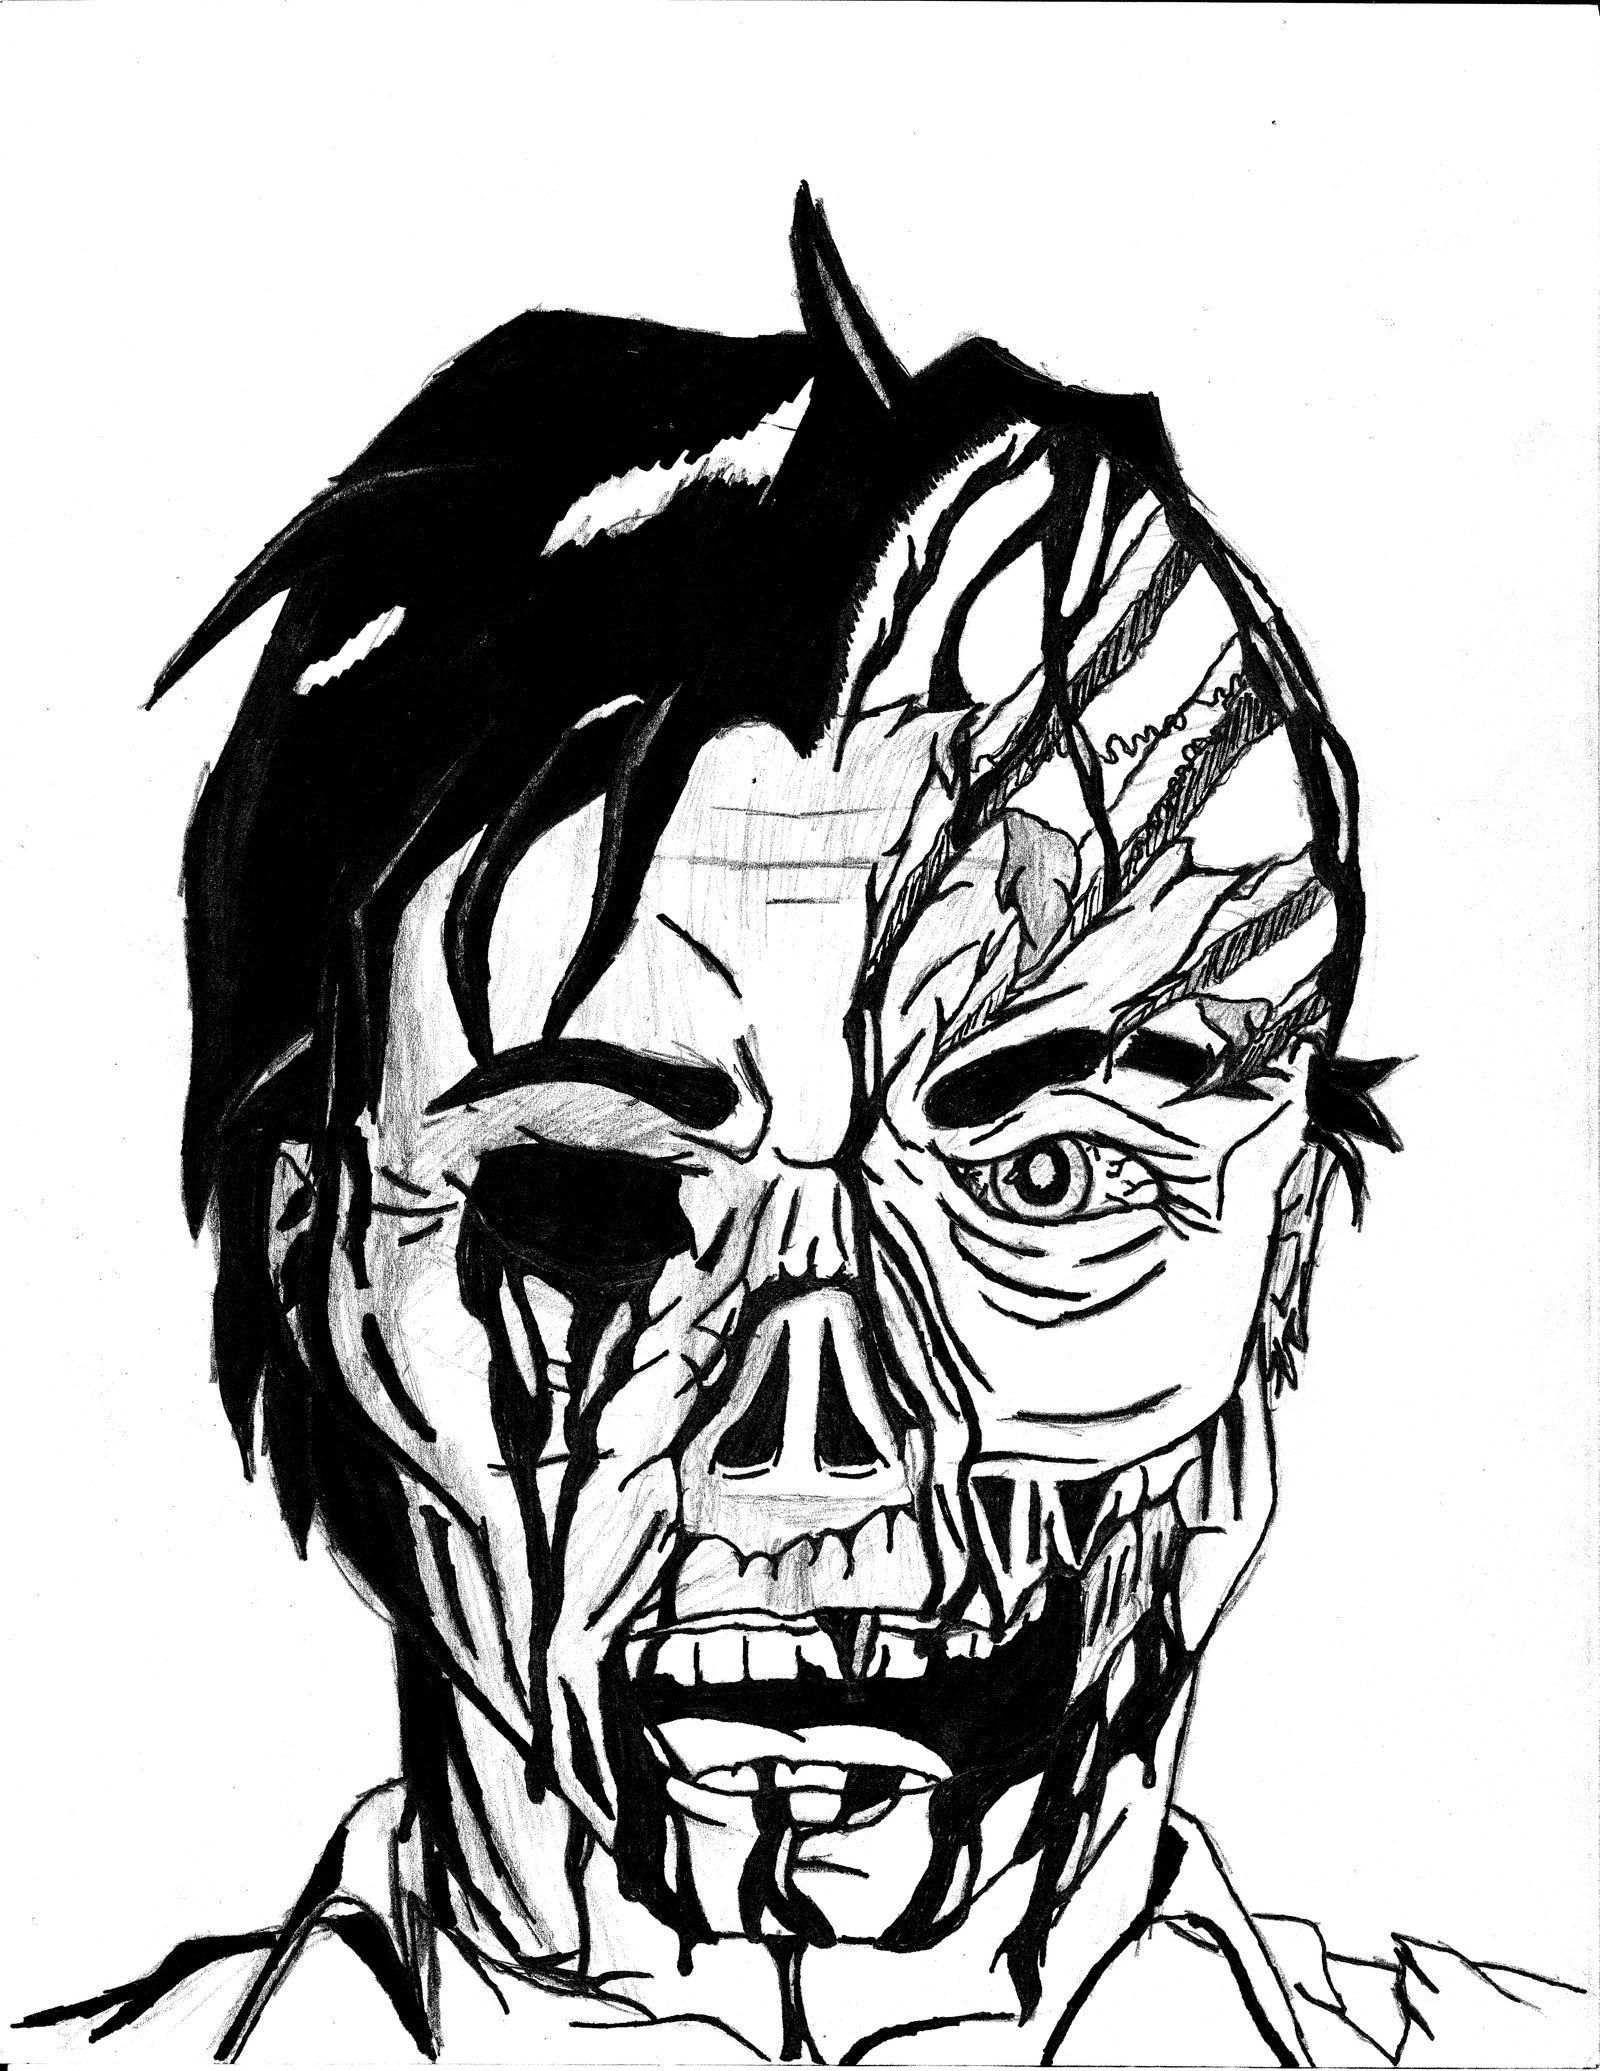 Download Or Print This Amazing Coloring Page Zombie Drawing By Jamesdamionblack On Deviantart Monster Coloring Pages Halloween Coloring Pages Coloring Pages